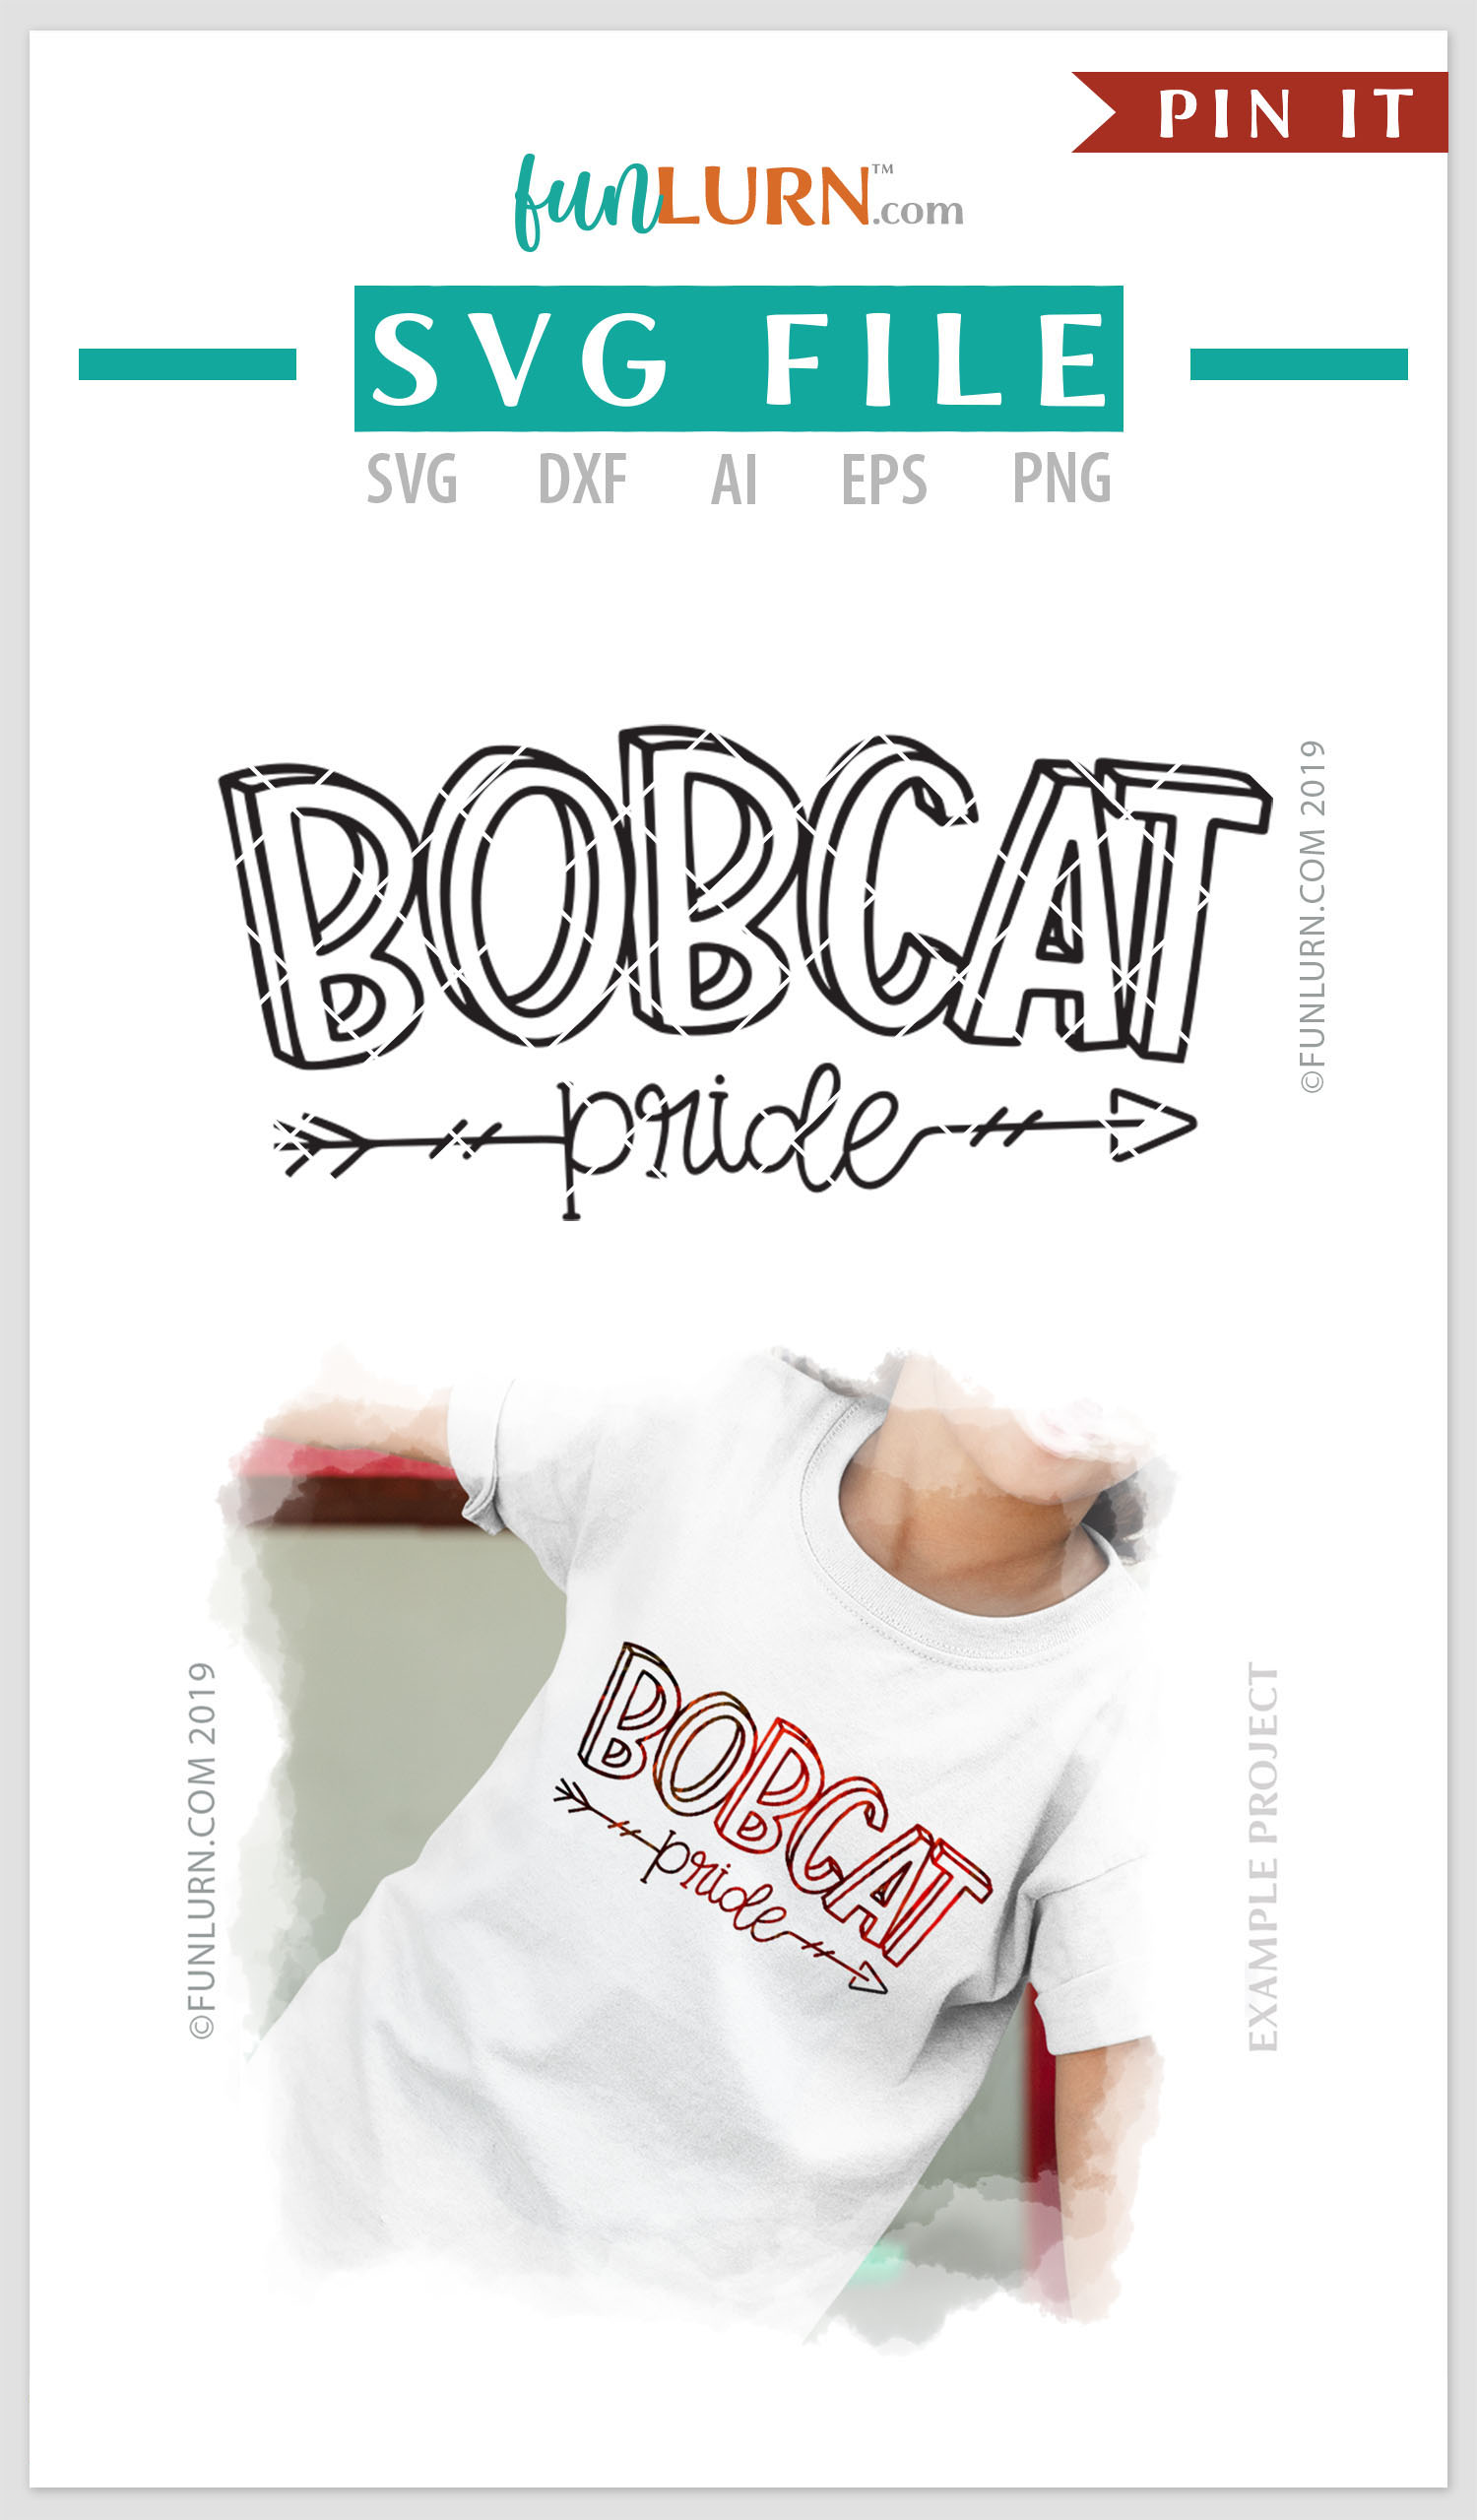 Bobcat Pride Team SVG Cut File example image 4